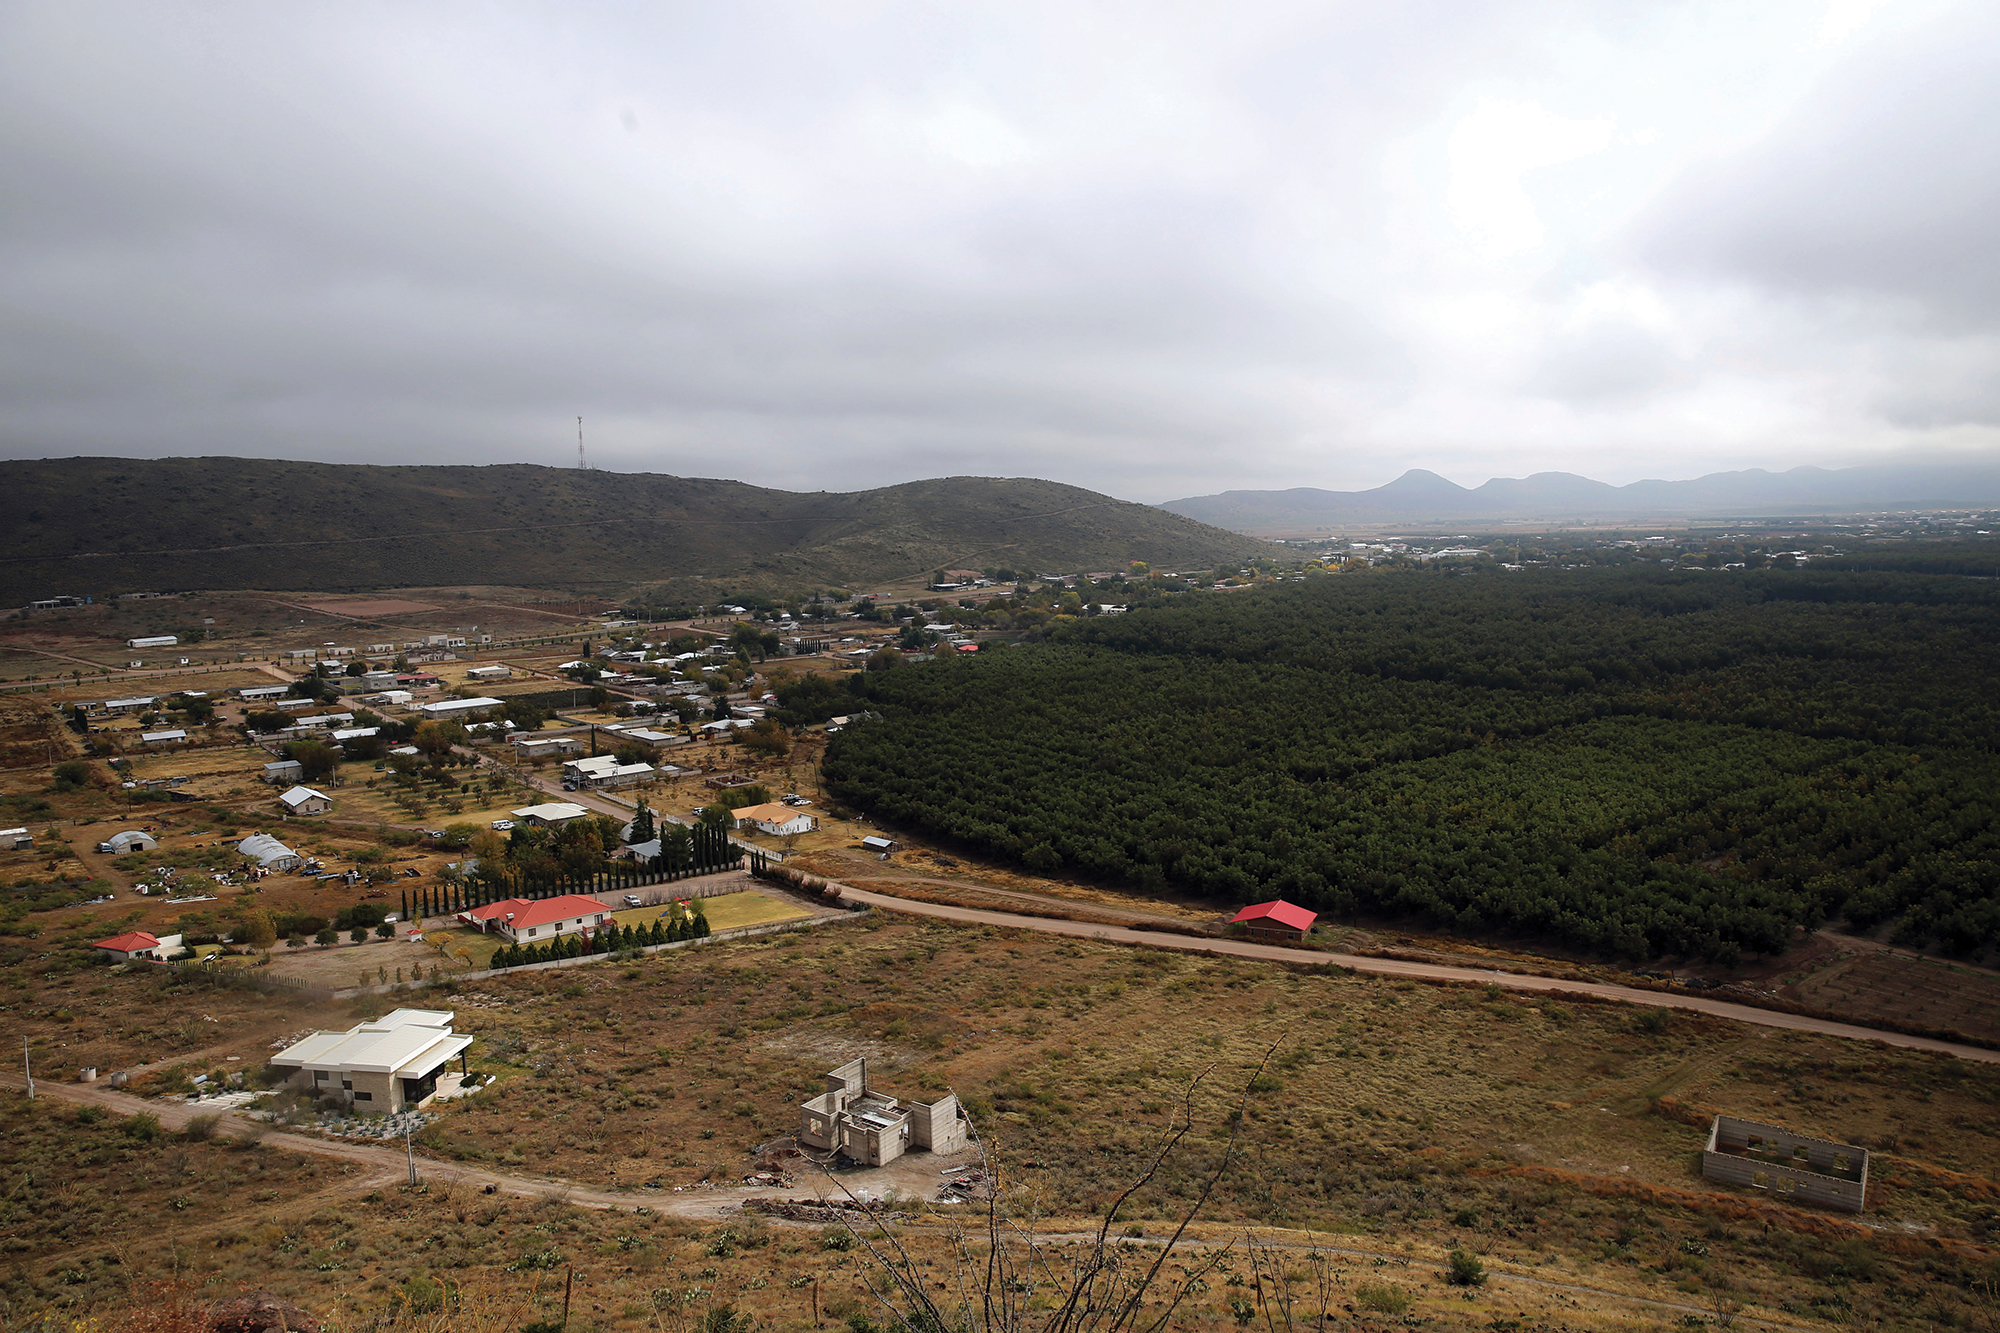 The aerial view of Colonia LeBaron, Mexico, where family and friends of shooting victim Christina Langford Johnson gathered for a funeral service on Saturday, November 9. Johnson was one victim of a cartel ambush that claimed nine lives. In the attack, Langford Johnson jumped out of her vehicle and waved her hands to show she was no threat to the attackers and was shot twice in the heart, community members say. Her 7-month-old daughter, Faith Marie Johnson, was found unharmed in her car seat.; Photo by Marco Ugarte/AP Images